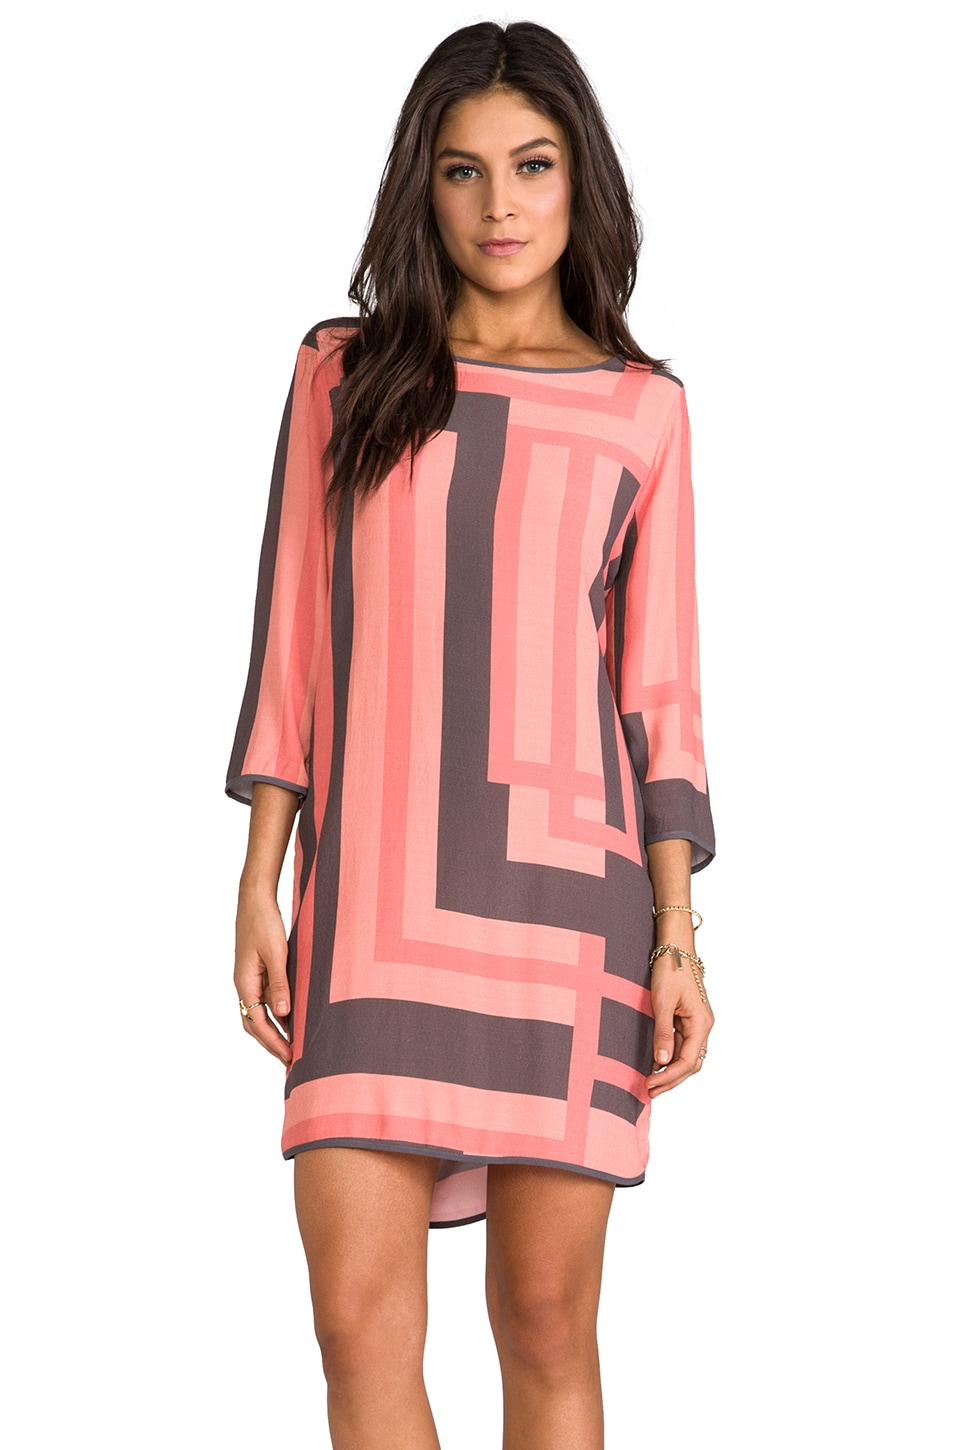 SAM&LAVI Chantelle Shift Dress in Twiggy